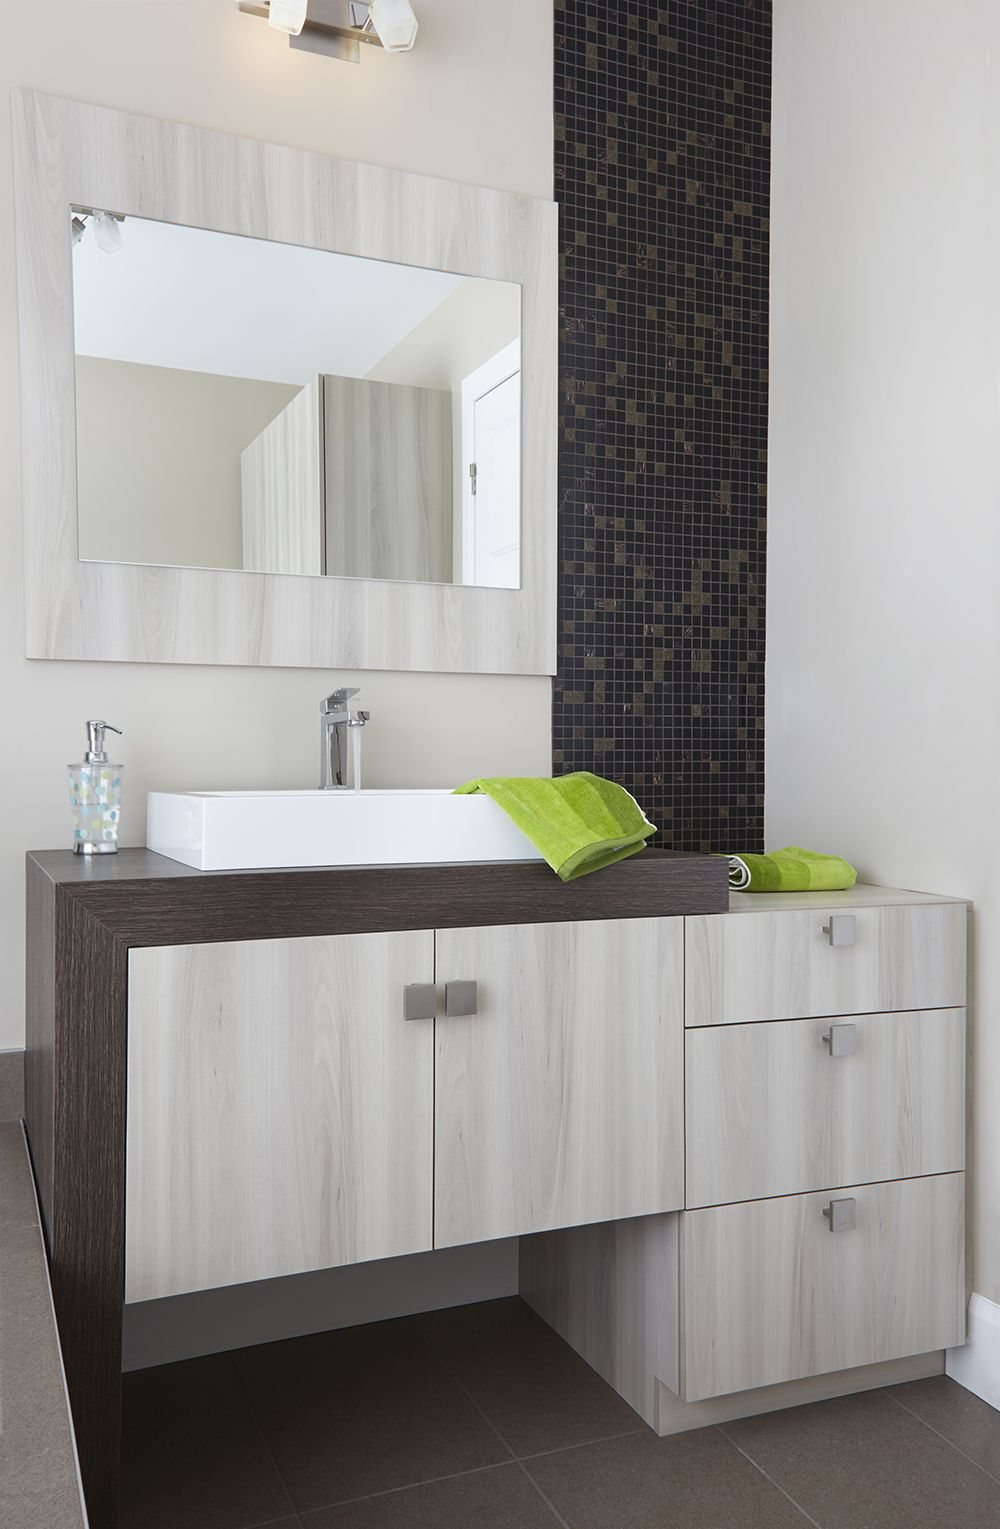 mur stratifi salle de bain good mur stratifi salle de bain with mur stratifi salle de bain. Black Bedroom Furniture Sets. Home Design Ideas